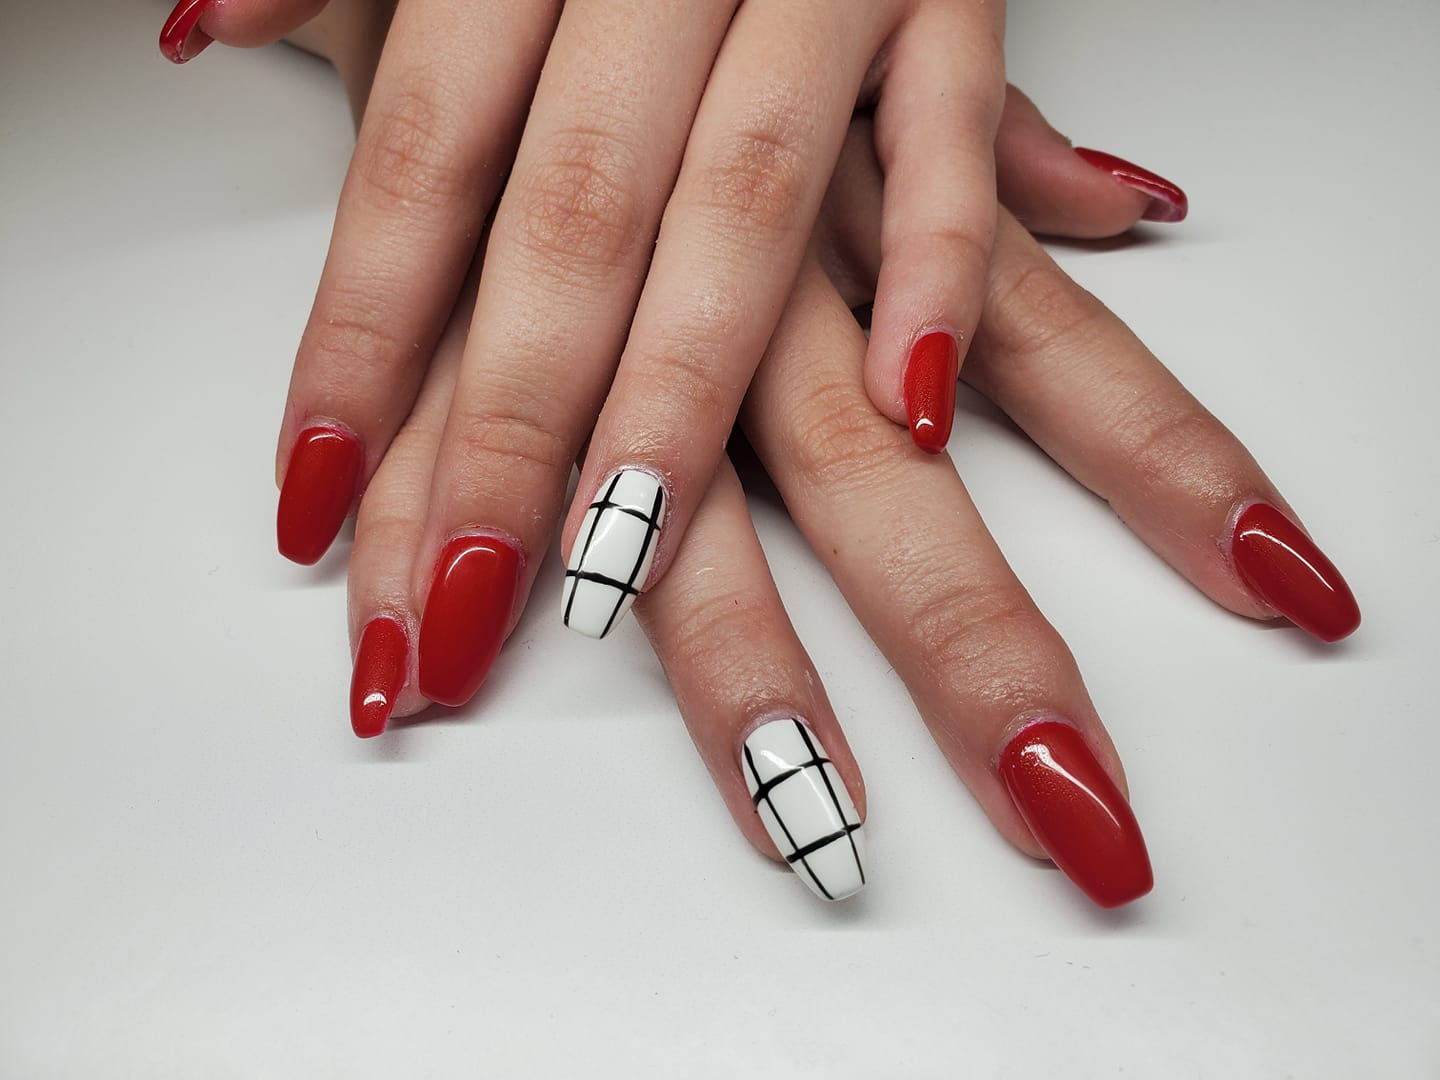 https://0201.nccdn.net/1_2/000/000/129/69f/updated-nails-2.jpg